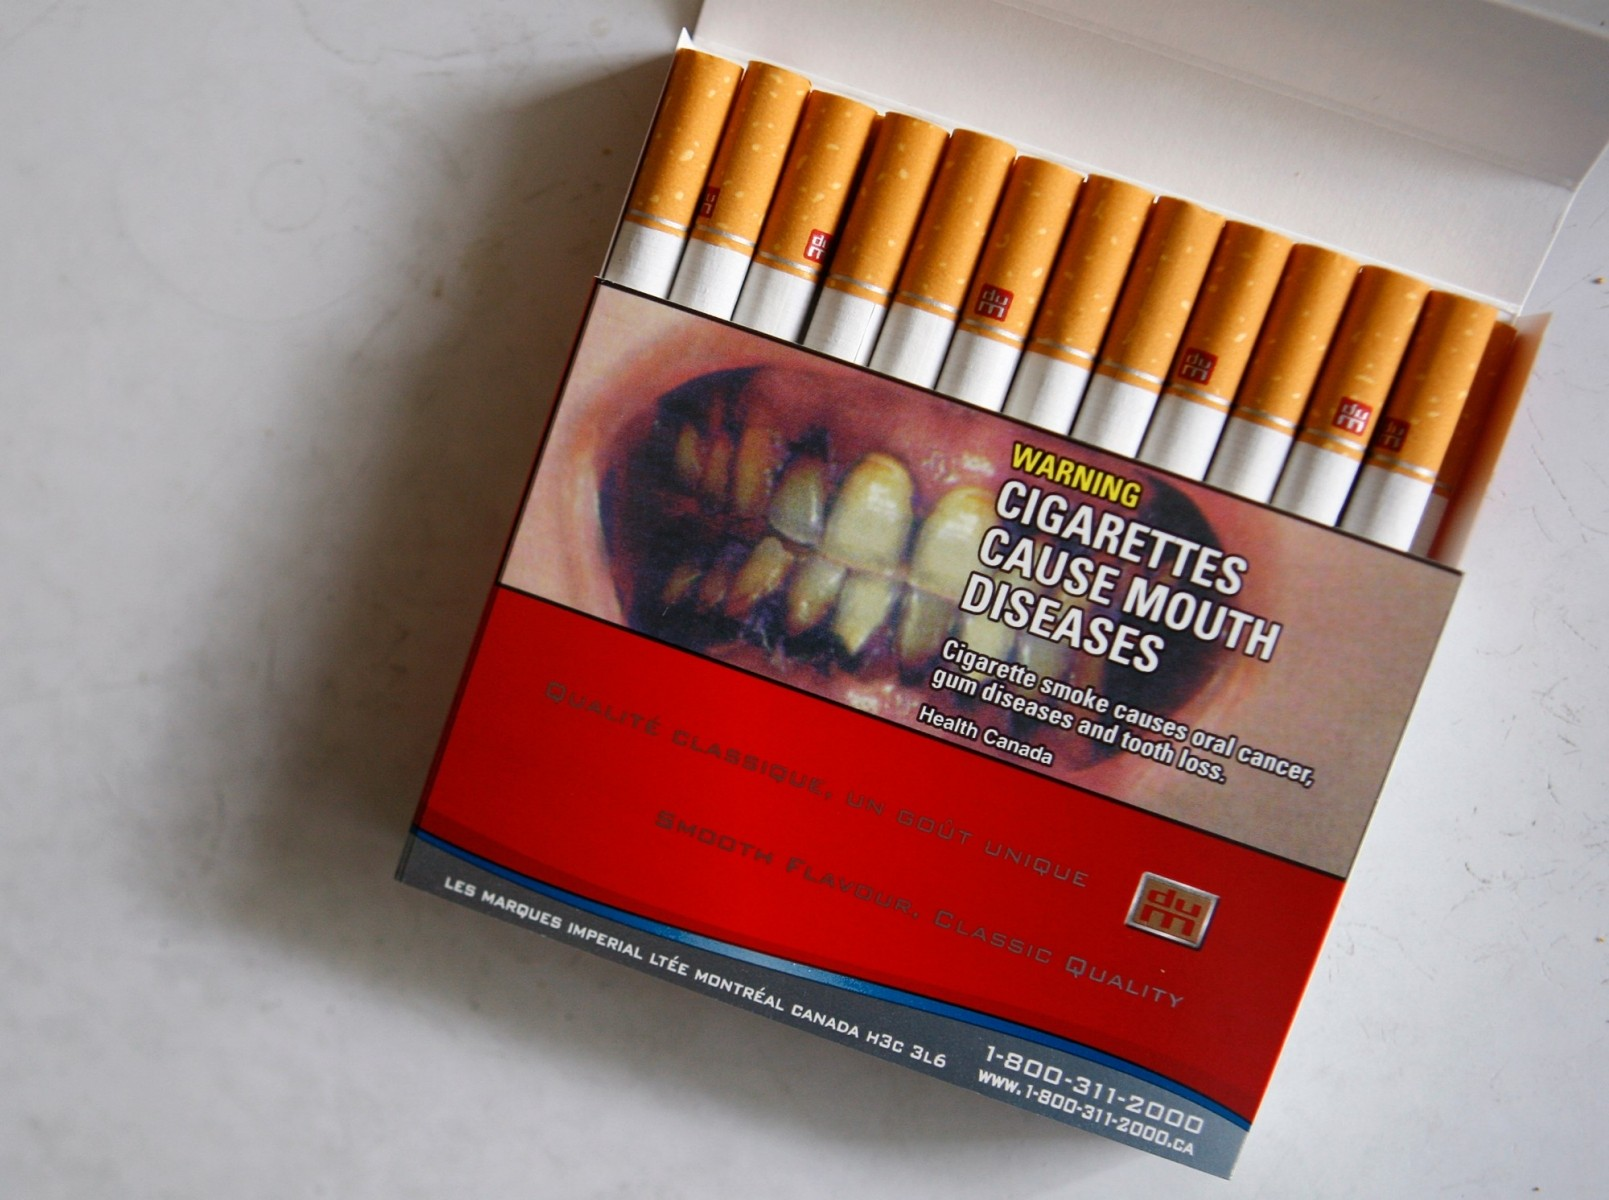 Graphic Warning Labels On Cigarettes Are Scary But Do They Work